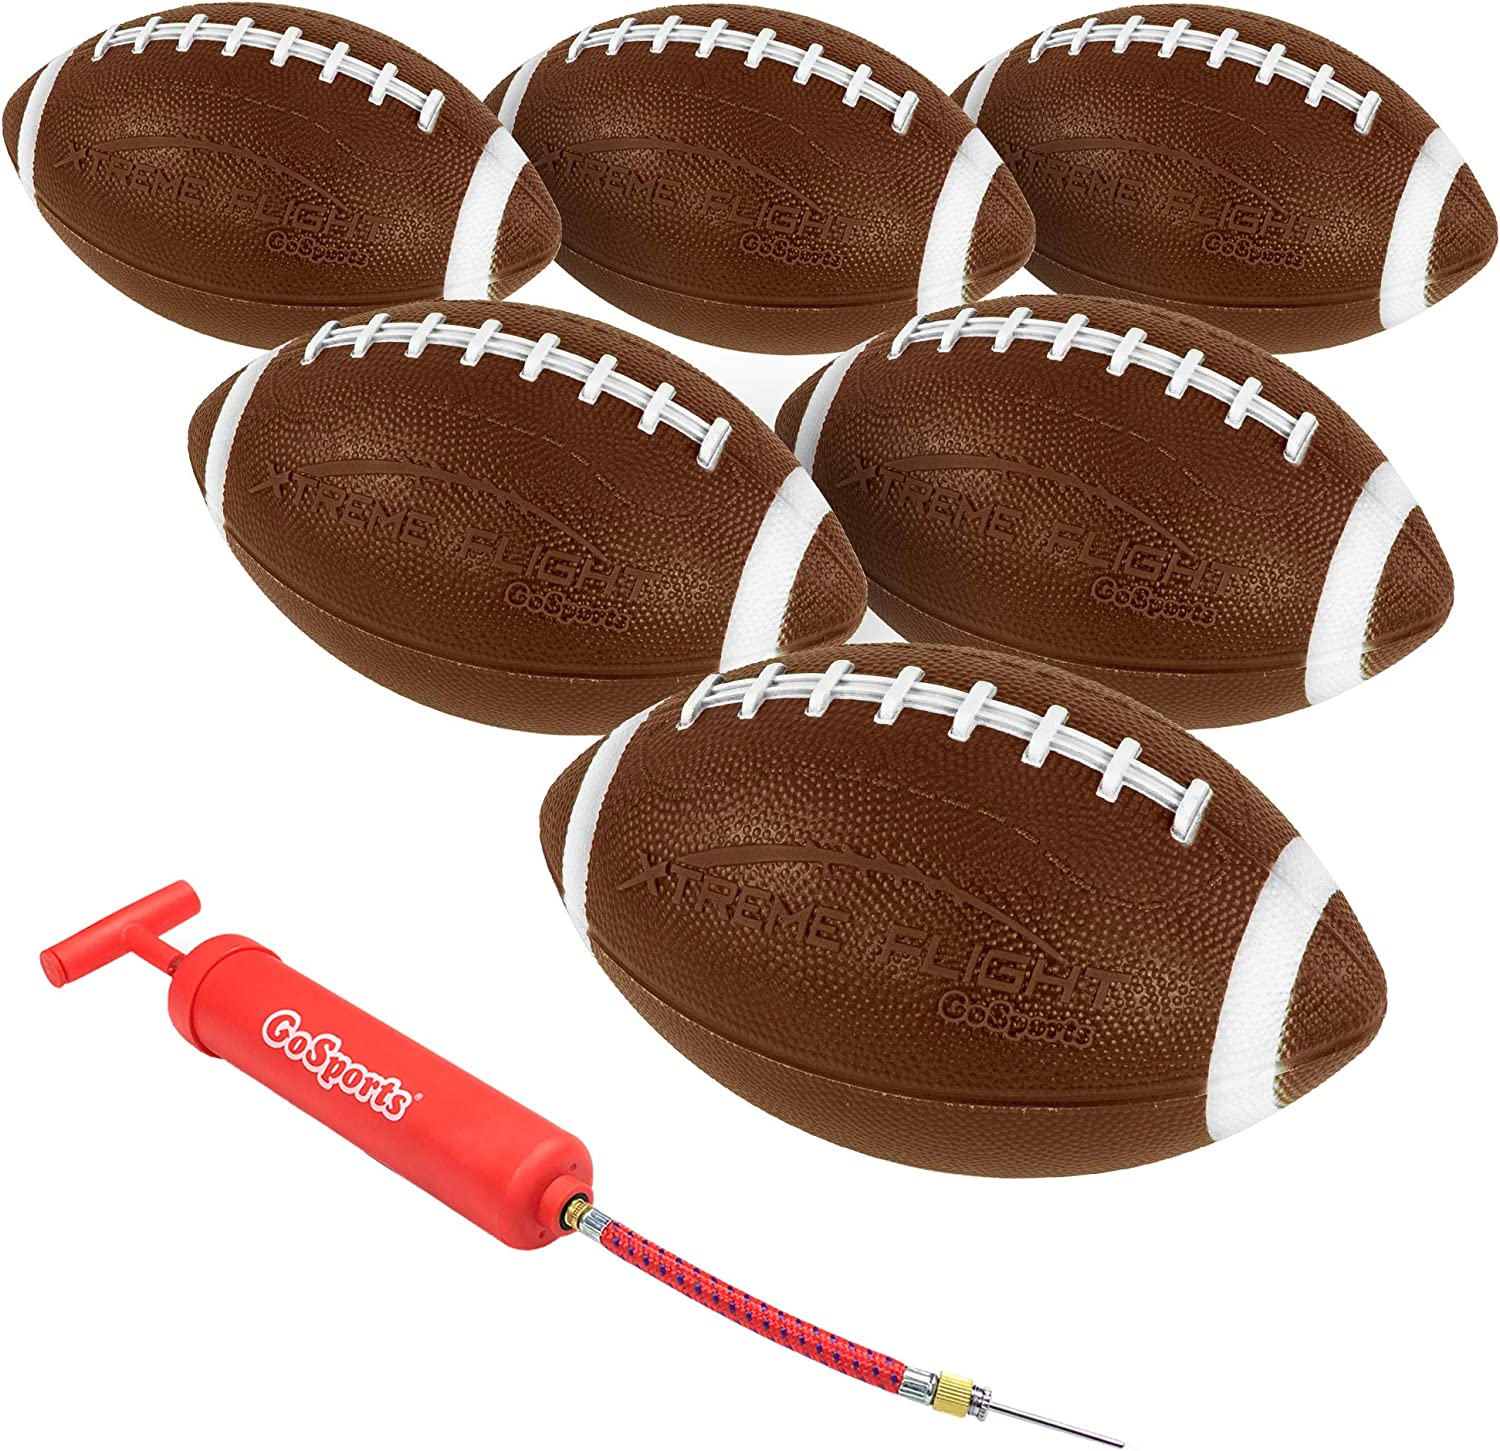 "GoSports Xtreme Flight Footballs 6 Pack, 9"" Rubber Inflatable Footballs"